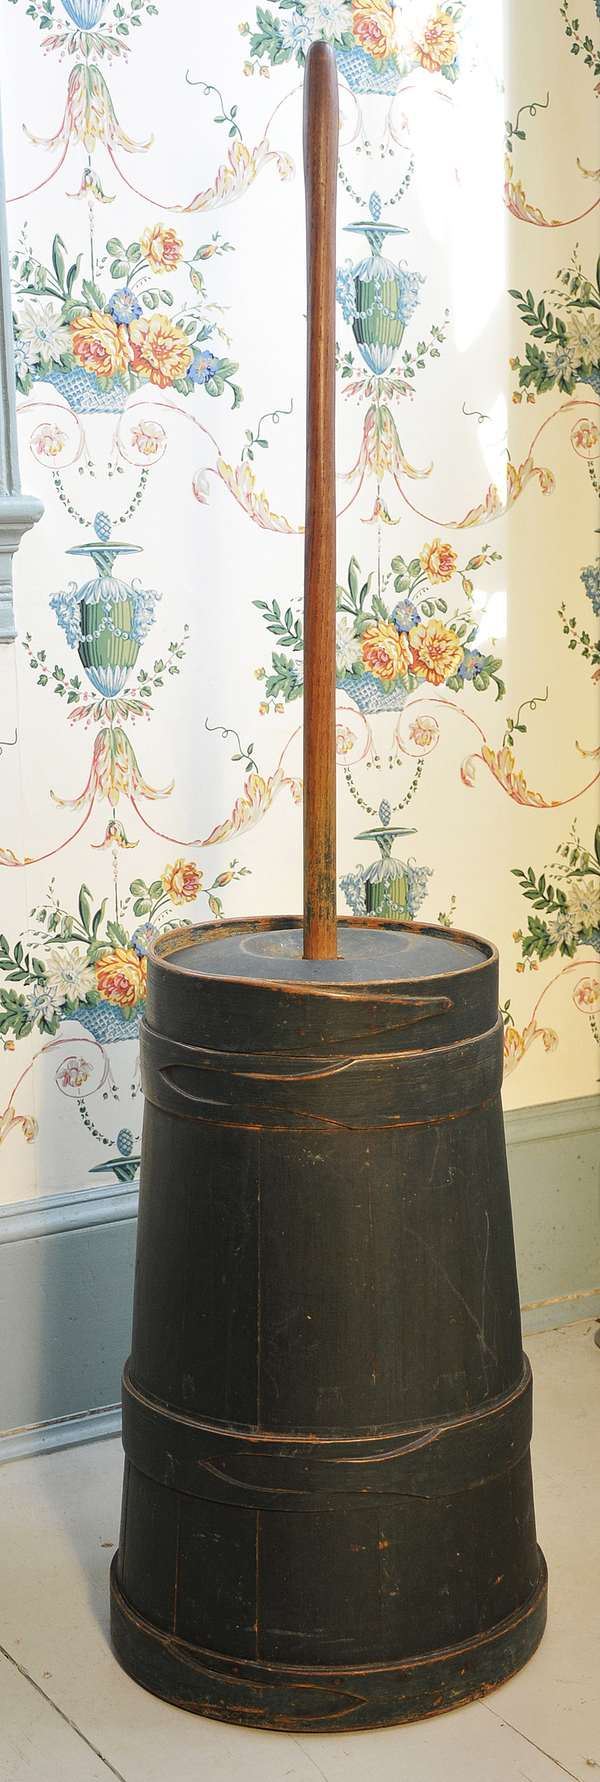 """An early 19th C. lapped butter churn in old green paint, 21""""H., 46"""" to the top of the handle"""